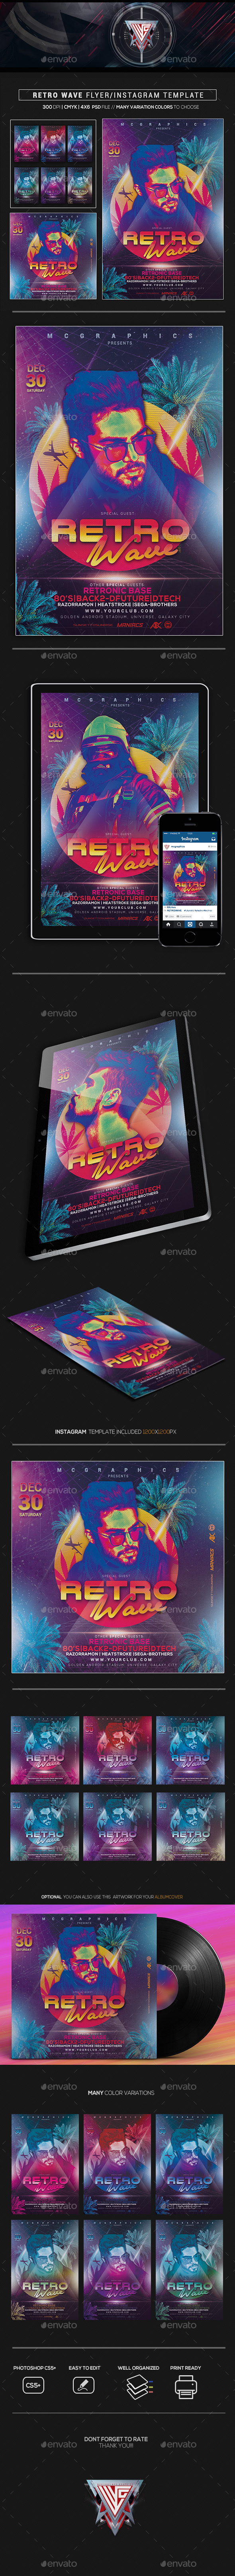 Retro Wave Flyer/Instagram Template - Flyers Print Templates